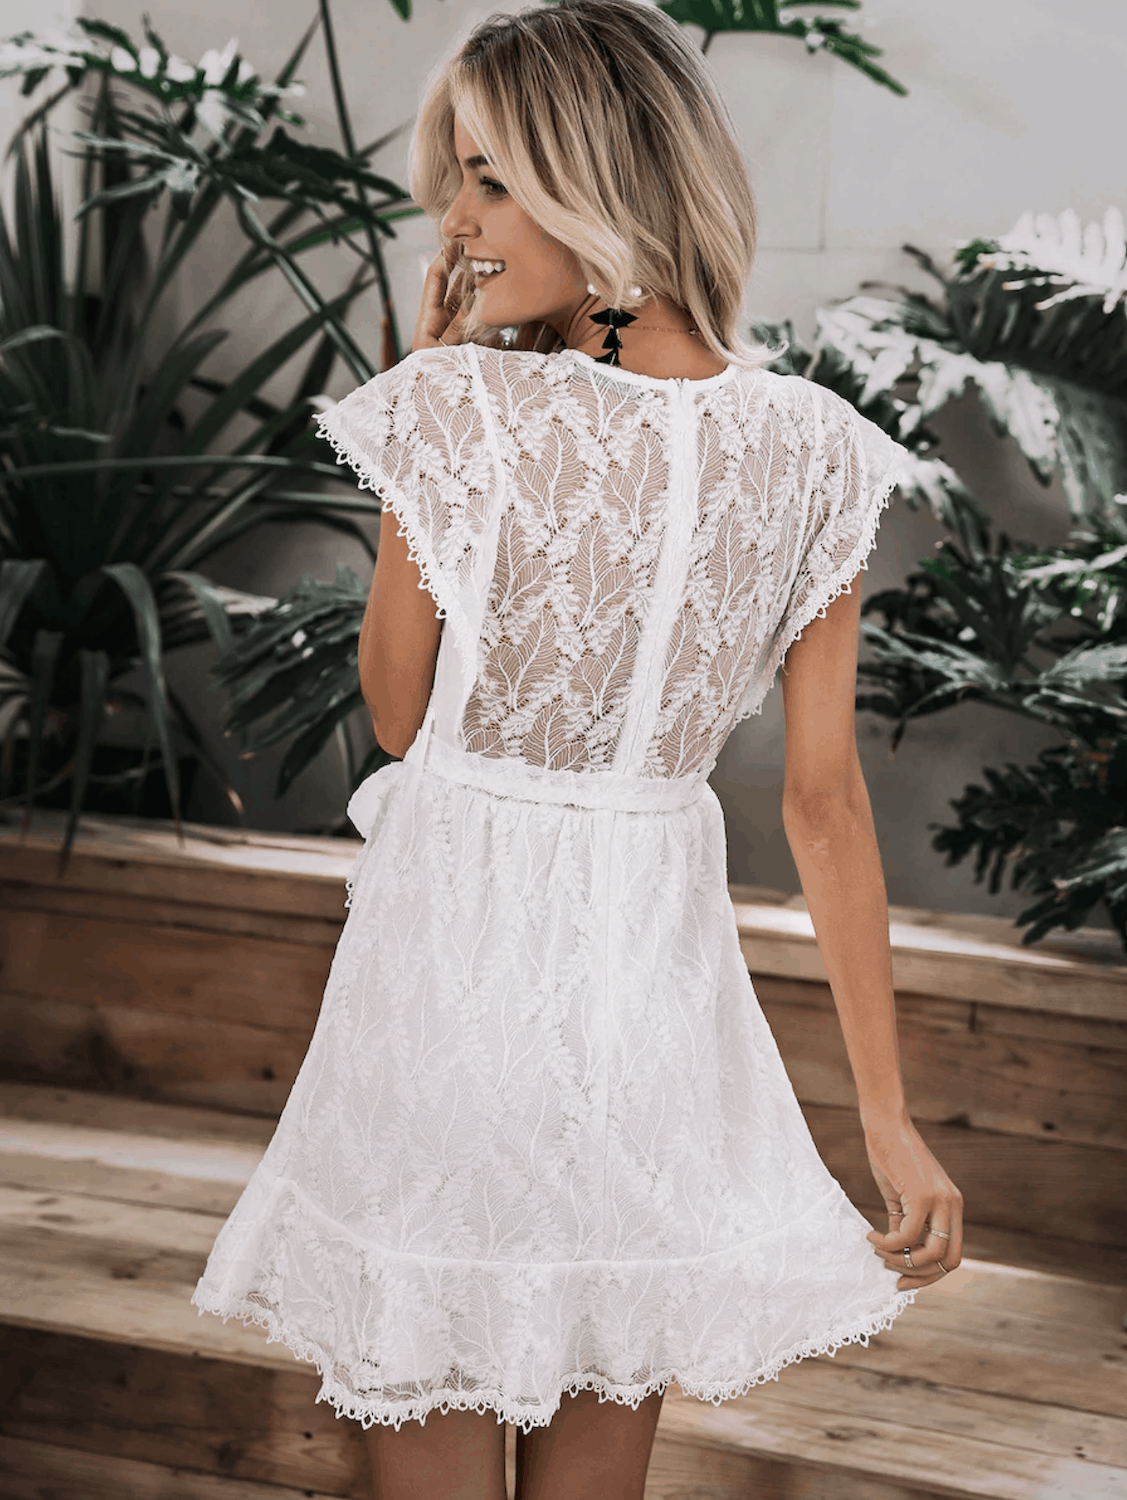 Bridal Shower Dresses for the Bride Simplee Zip Back Ruffle Hem Wrap Belted Lace Dress 2